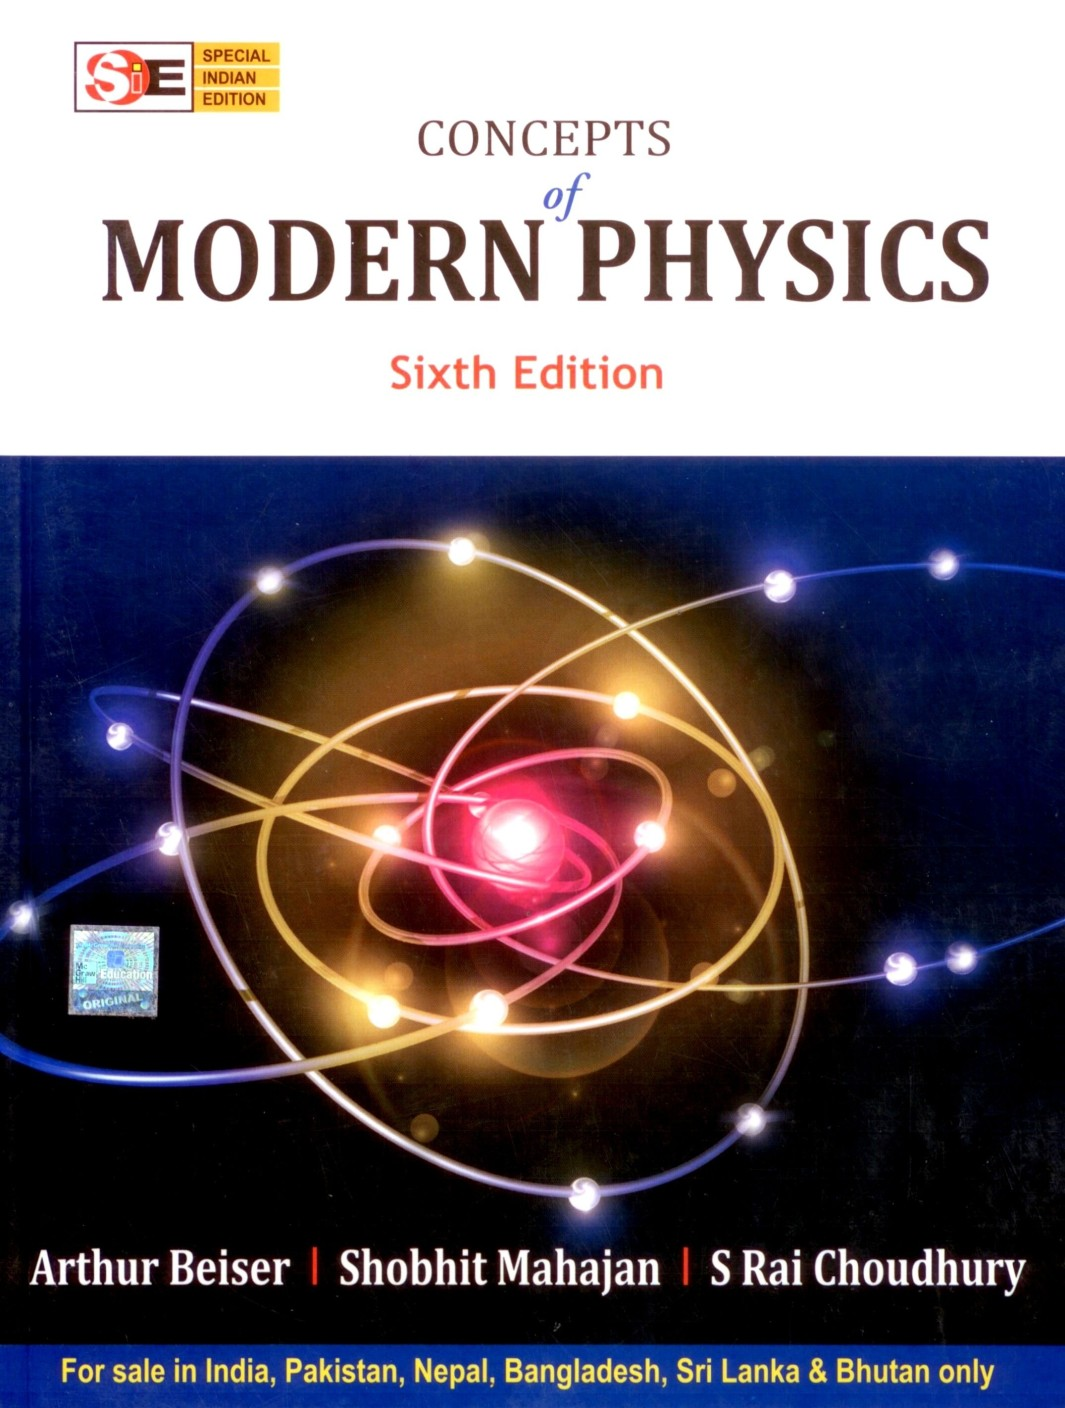 Best Book for Learning Basic Physics? | Physics Forums